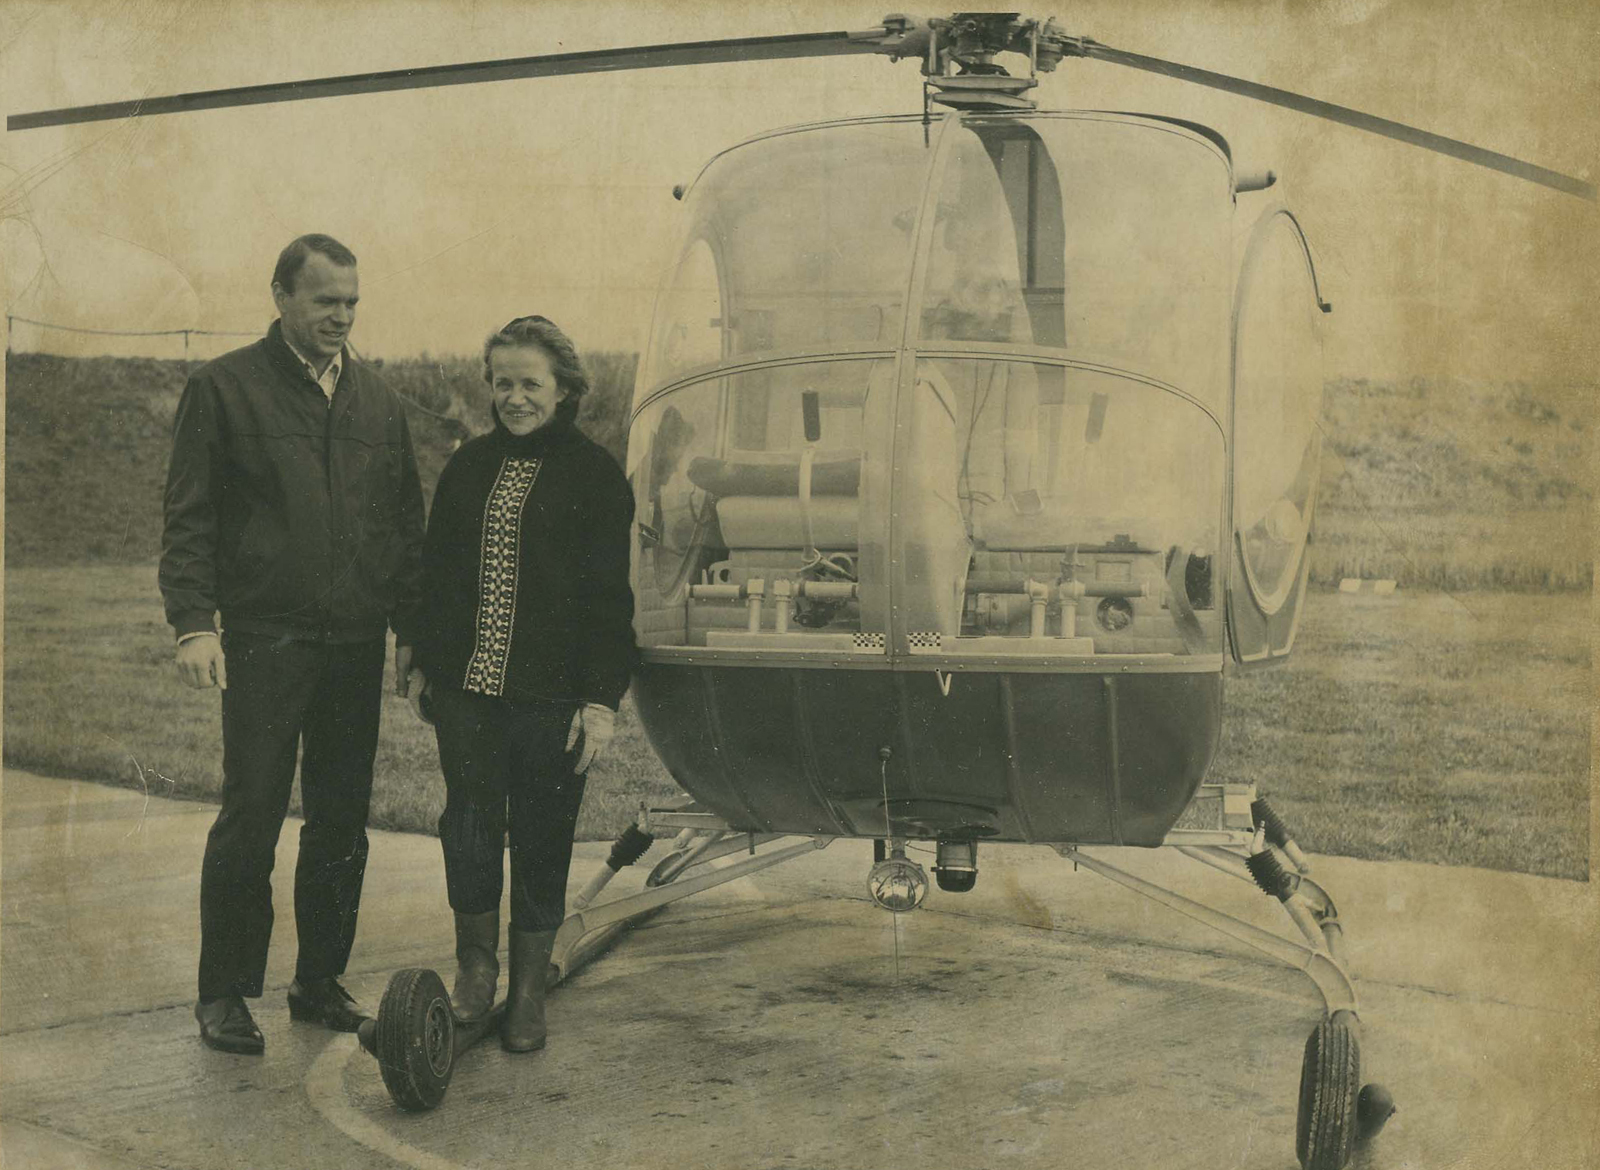 The first woman in the world to earn a helicopter rating was Hanna Reitsch, Whirly-Girl #1. Reitsch flew the first true vertical flight machine, a Focke Achgelis helicopter, in 1938. Development of the commercial helicopter halted during World War II.